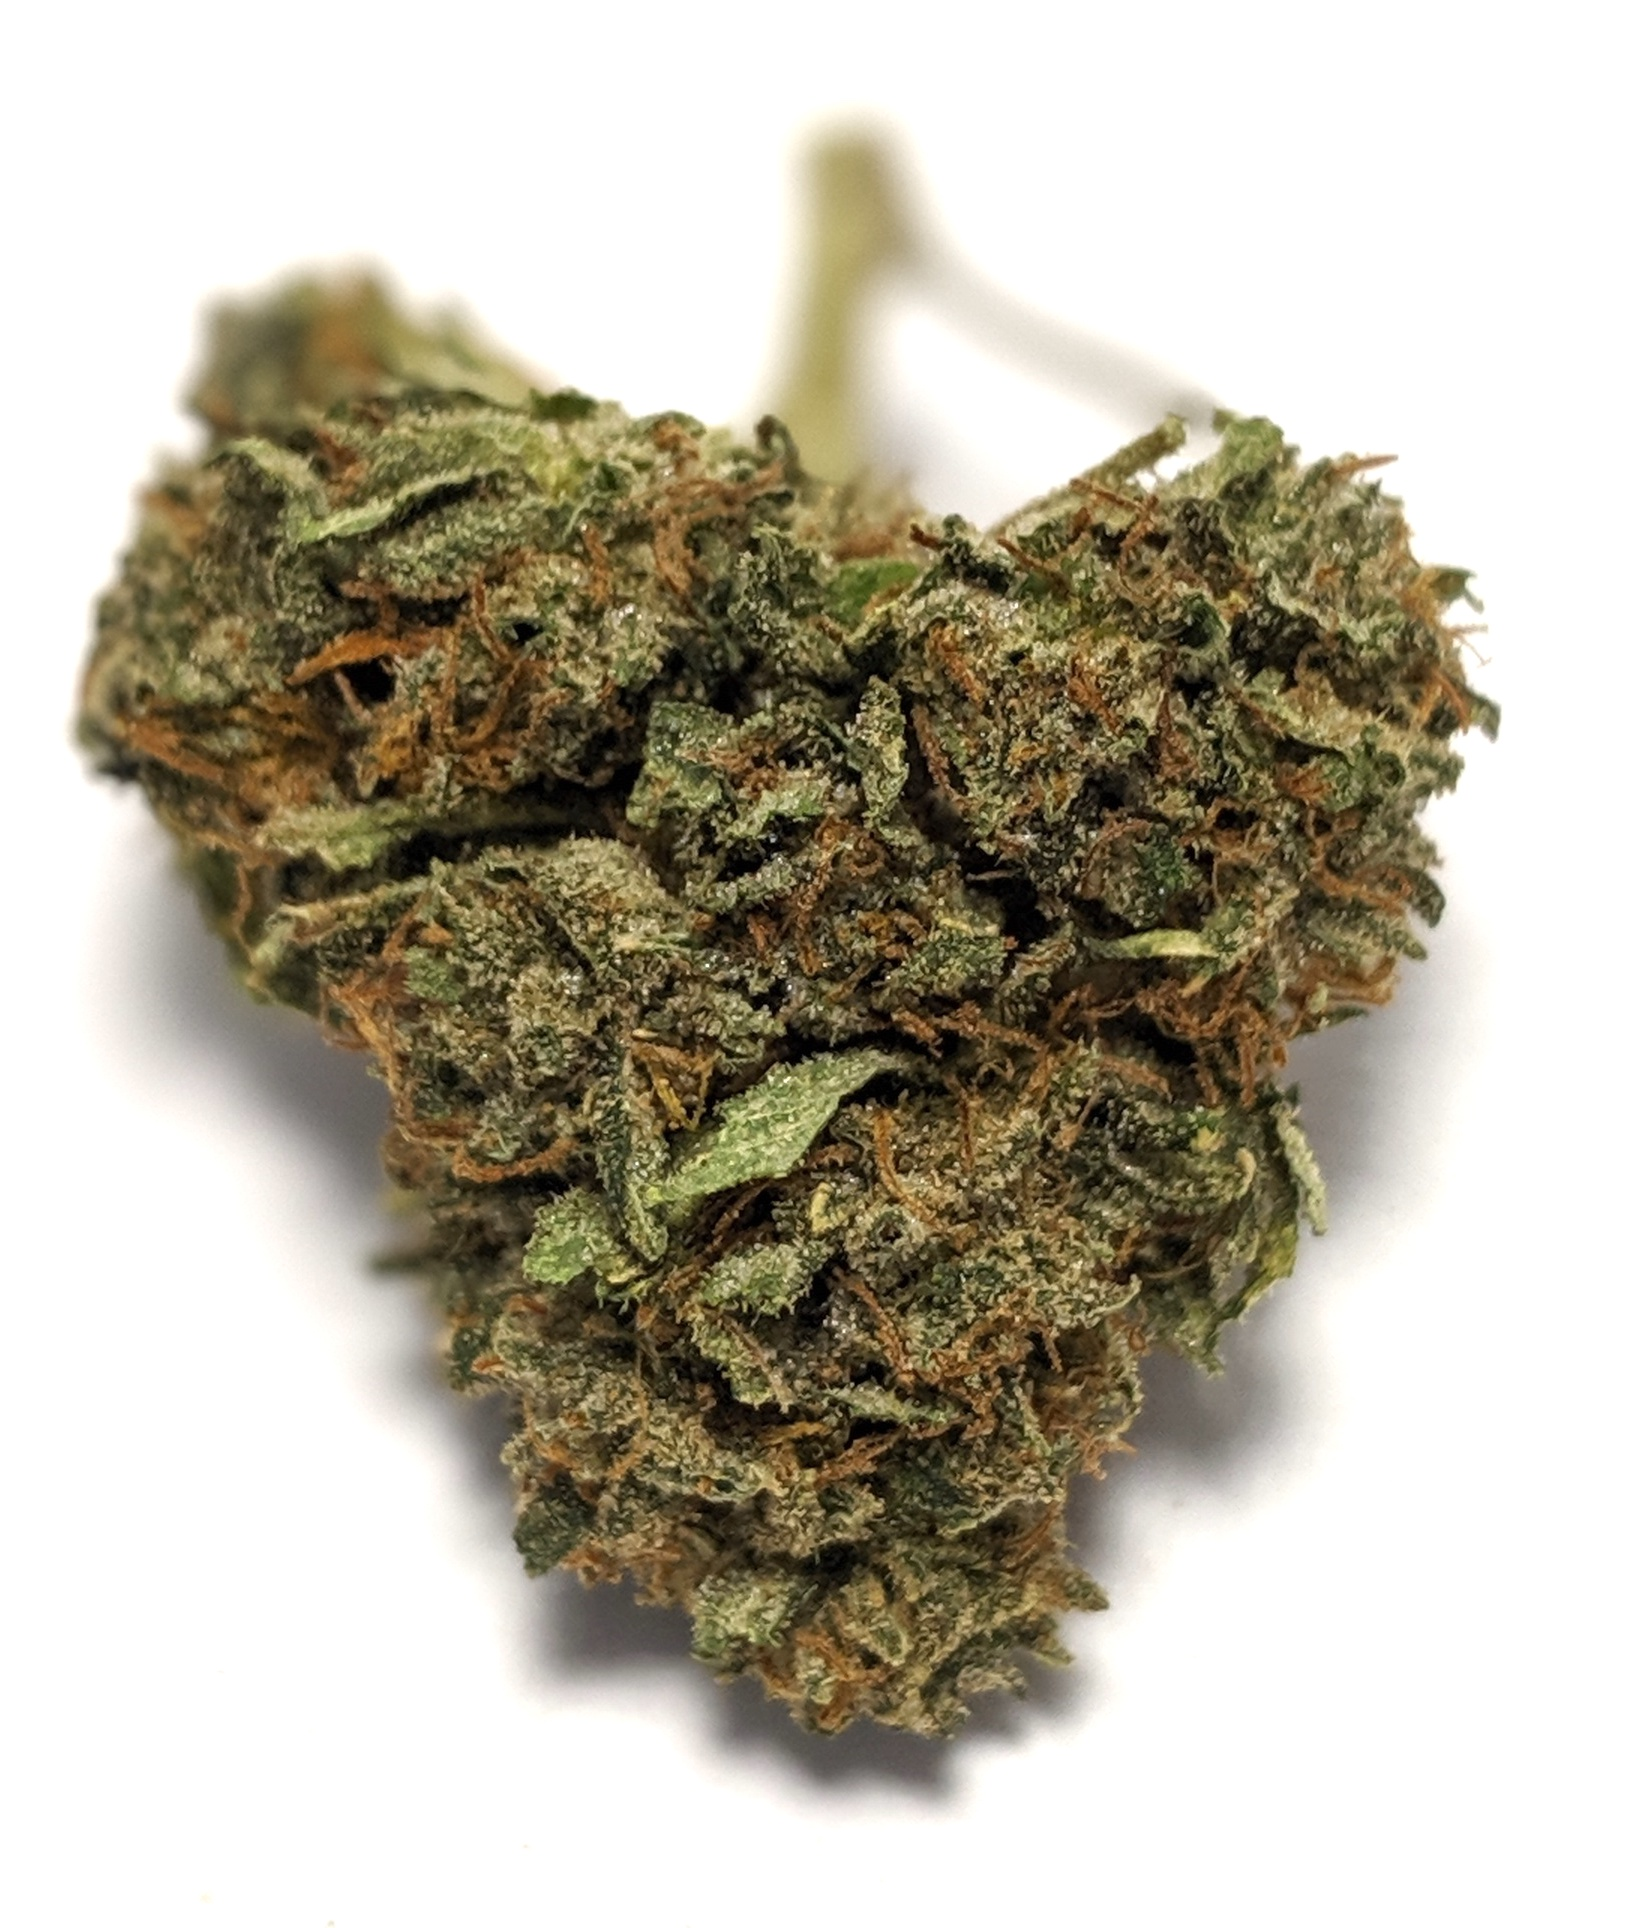 Sour OG - Hybrid- OZ SALE!!!    1/4- $50 1/2-$90 OZ-$145   Sour OG is a 50/50 hybrid strain that is a real favorite among those who love a balanced sativa/indica buzz. As a cross of two of the most popular and widely available strains in the world (Sour Diesel and OG Kush), Sour OG has been available in clone and seed form for quite some time. Most samples express dense, round, OG Kush-type buds laden with large, sticky trichomes. The odor and taste are usually an equal mix of both parents, with sour lemon, pine, fuel, and a distinct kushy undertone, although some versions have a more fruity profile. Often described as a one-hit-quit strain, Sour OG starts with an energetic head high that gradually gives way to a relaxing body stone.